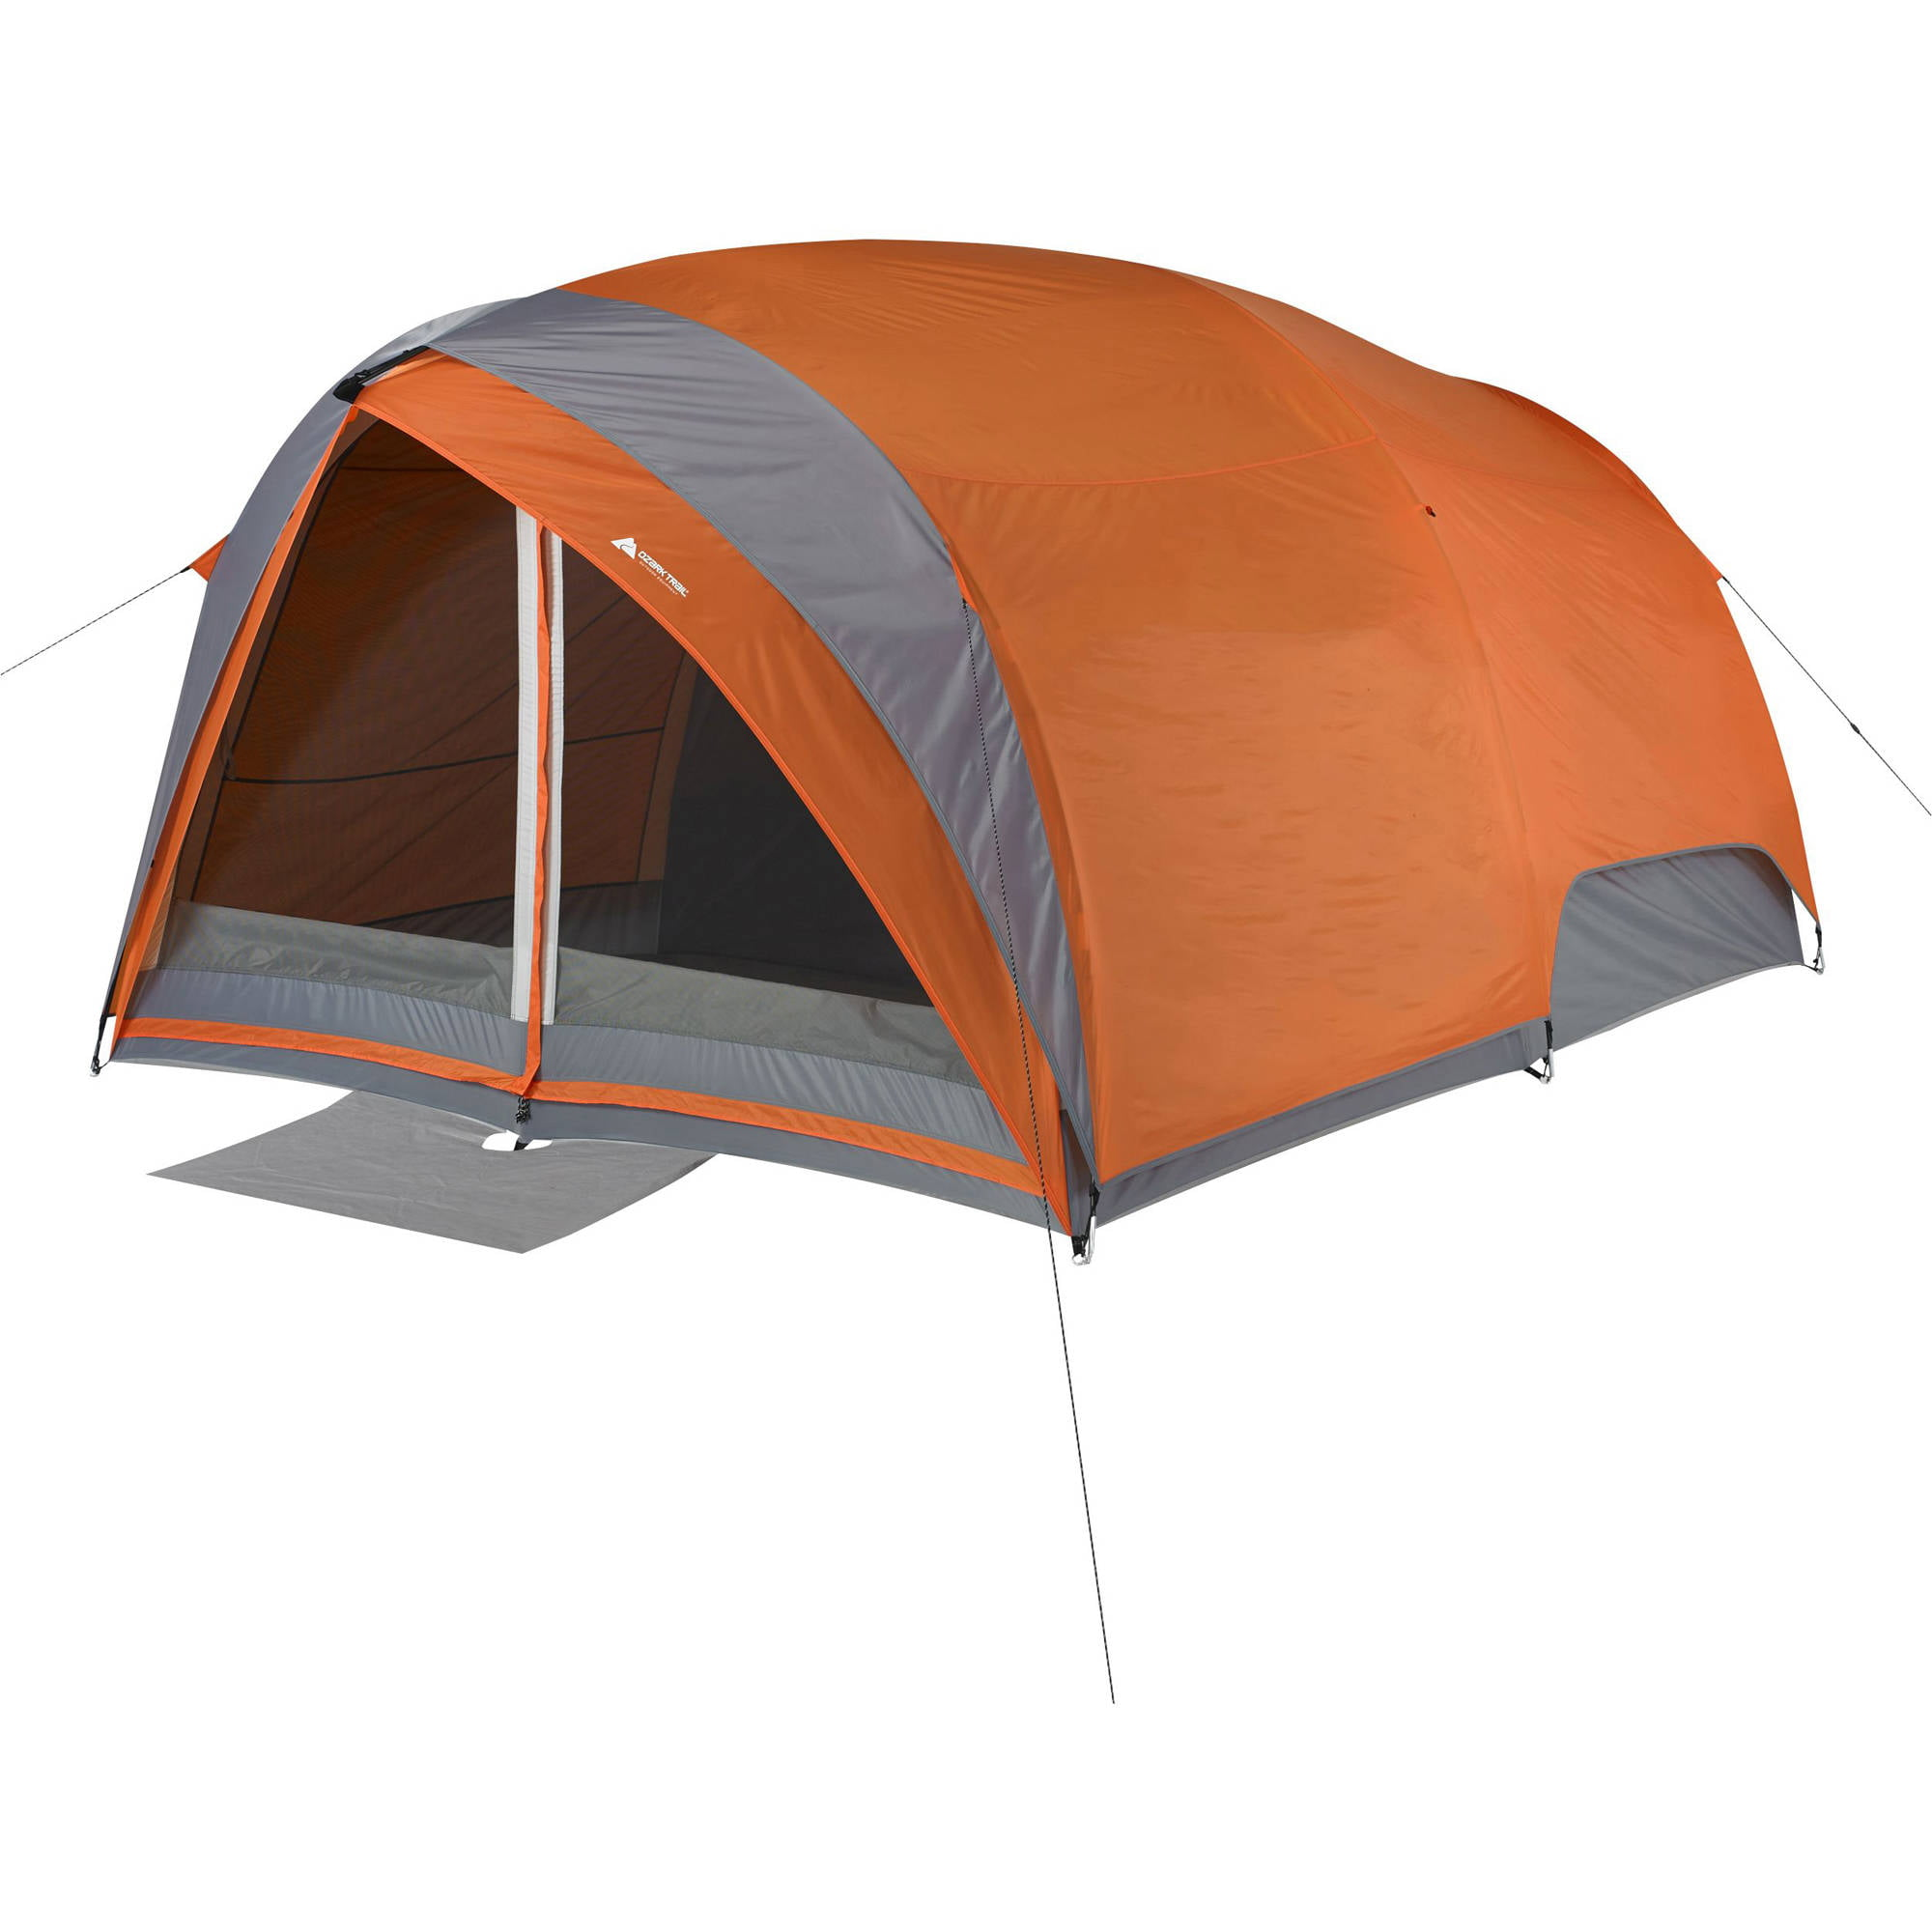 Ozark Trail 8-Person Dome Tunnel Tent with Maximum Weather Protection - Walmart.com  sc 1 st  Walmart & Ozark Trail 8-Person Dome Tunnel Tent with Maximum Weather ...